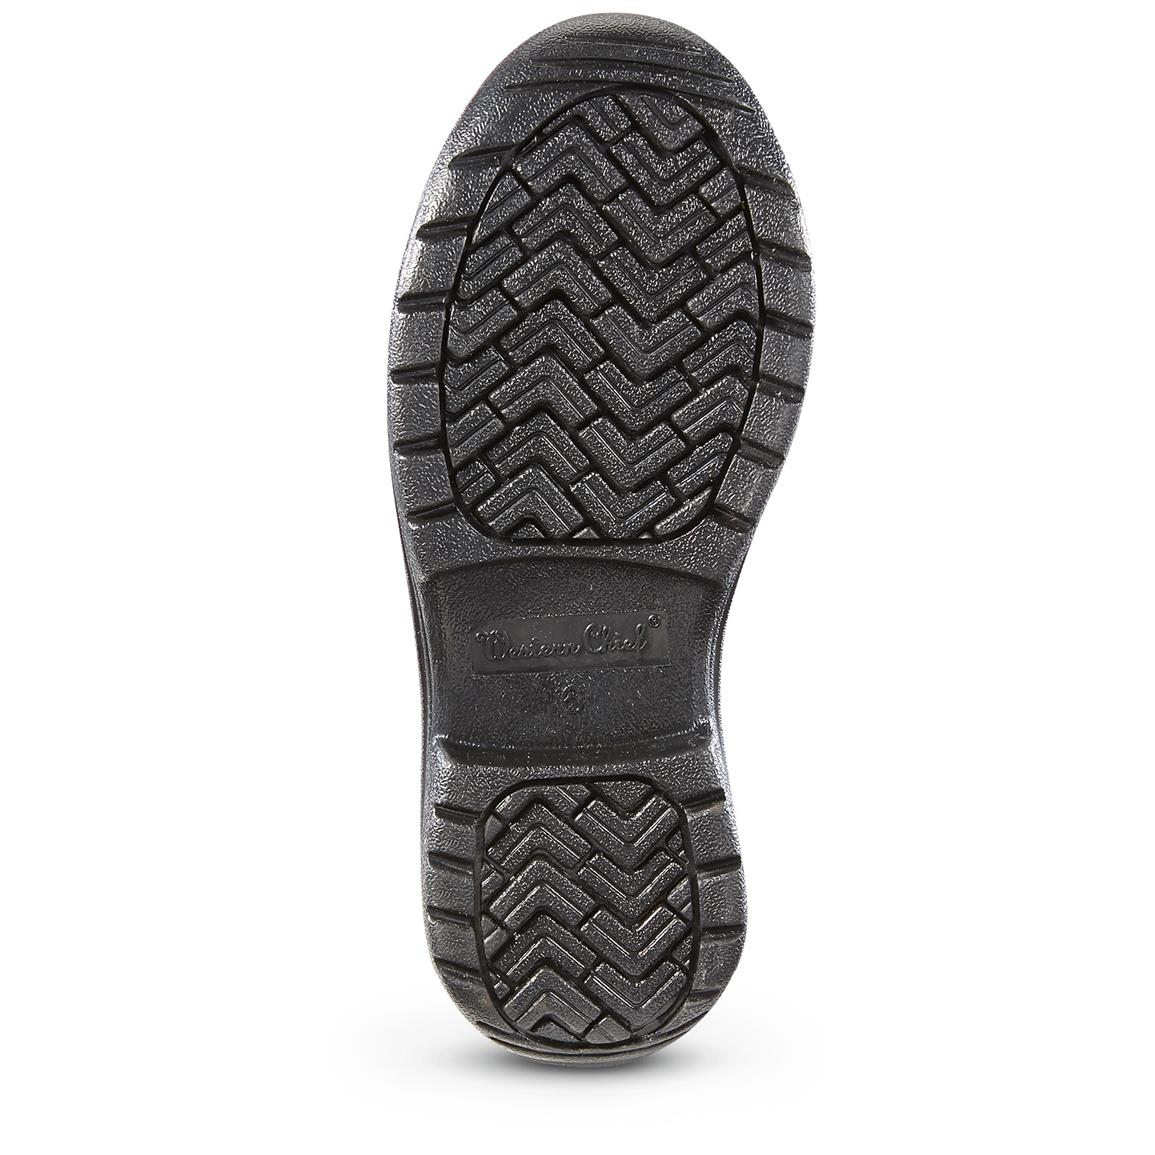 Specialized treads and concave outsole design for traction on wet surfaces